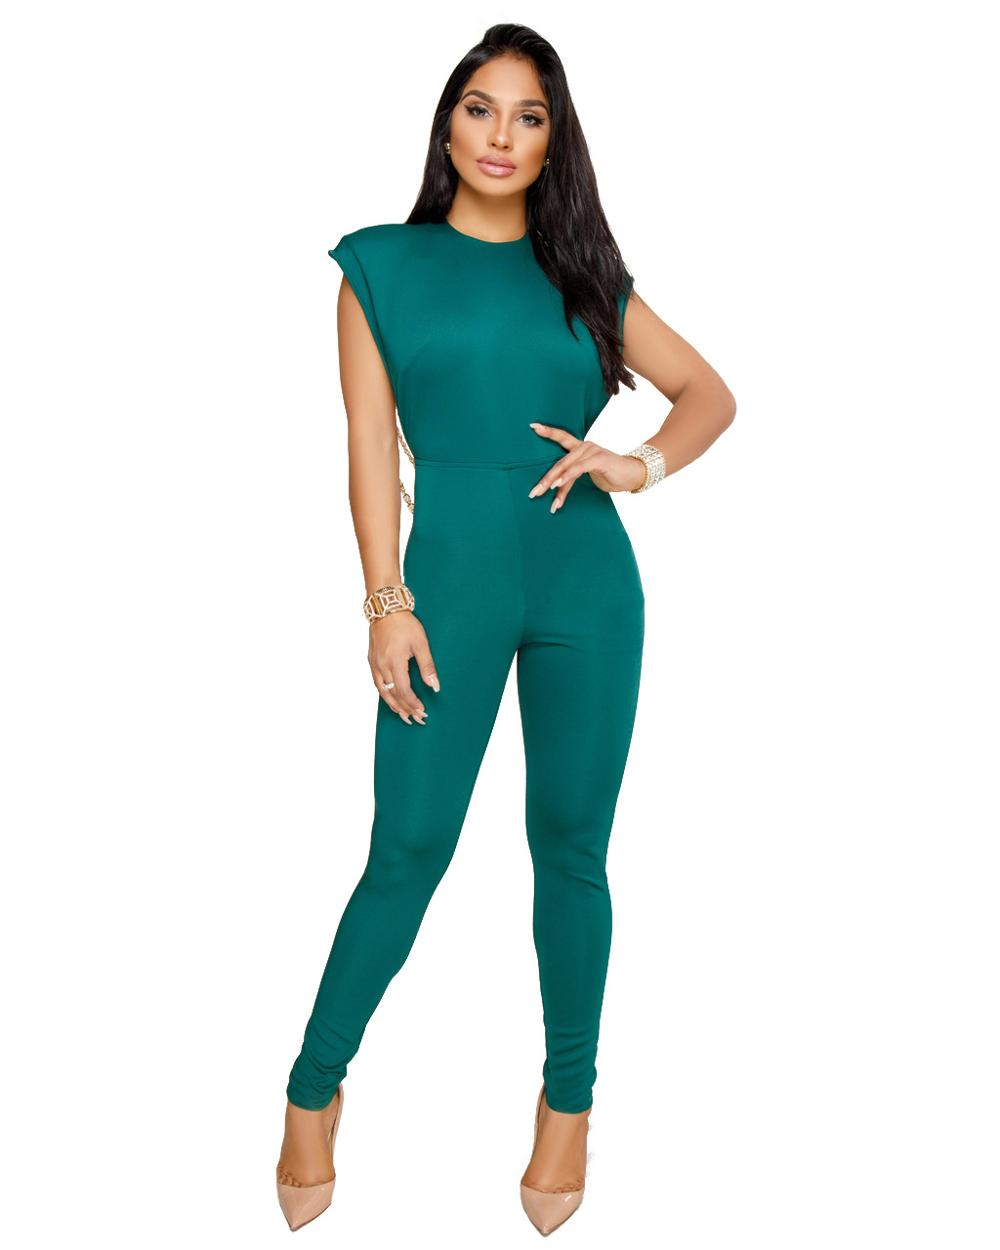 2243292eddd Jumpsuits and Rompers Archives - BelleOutfits